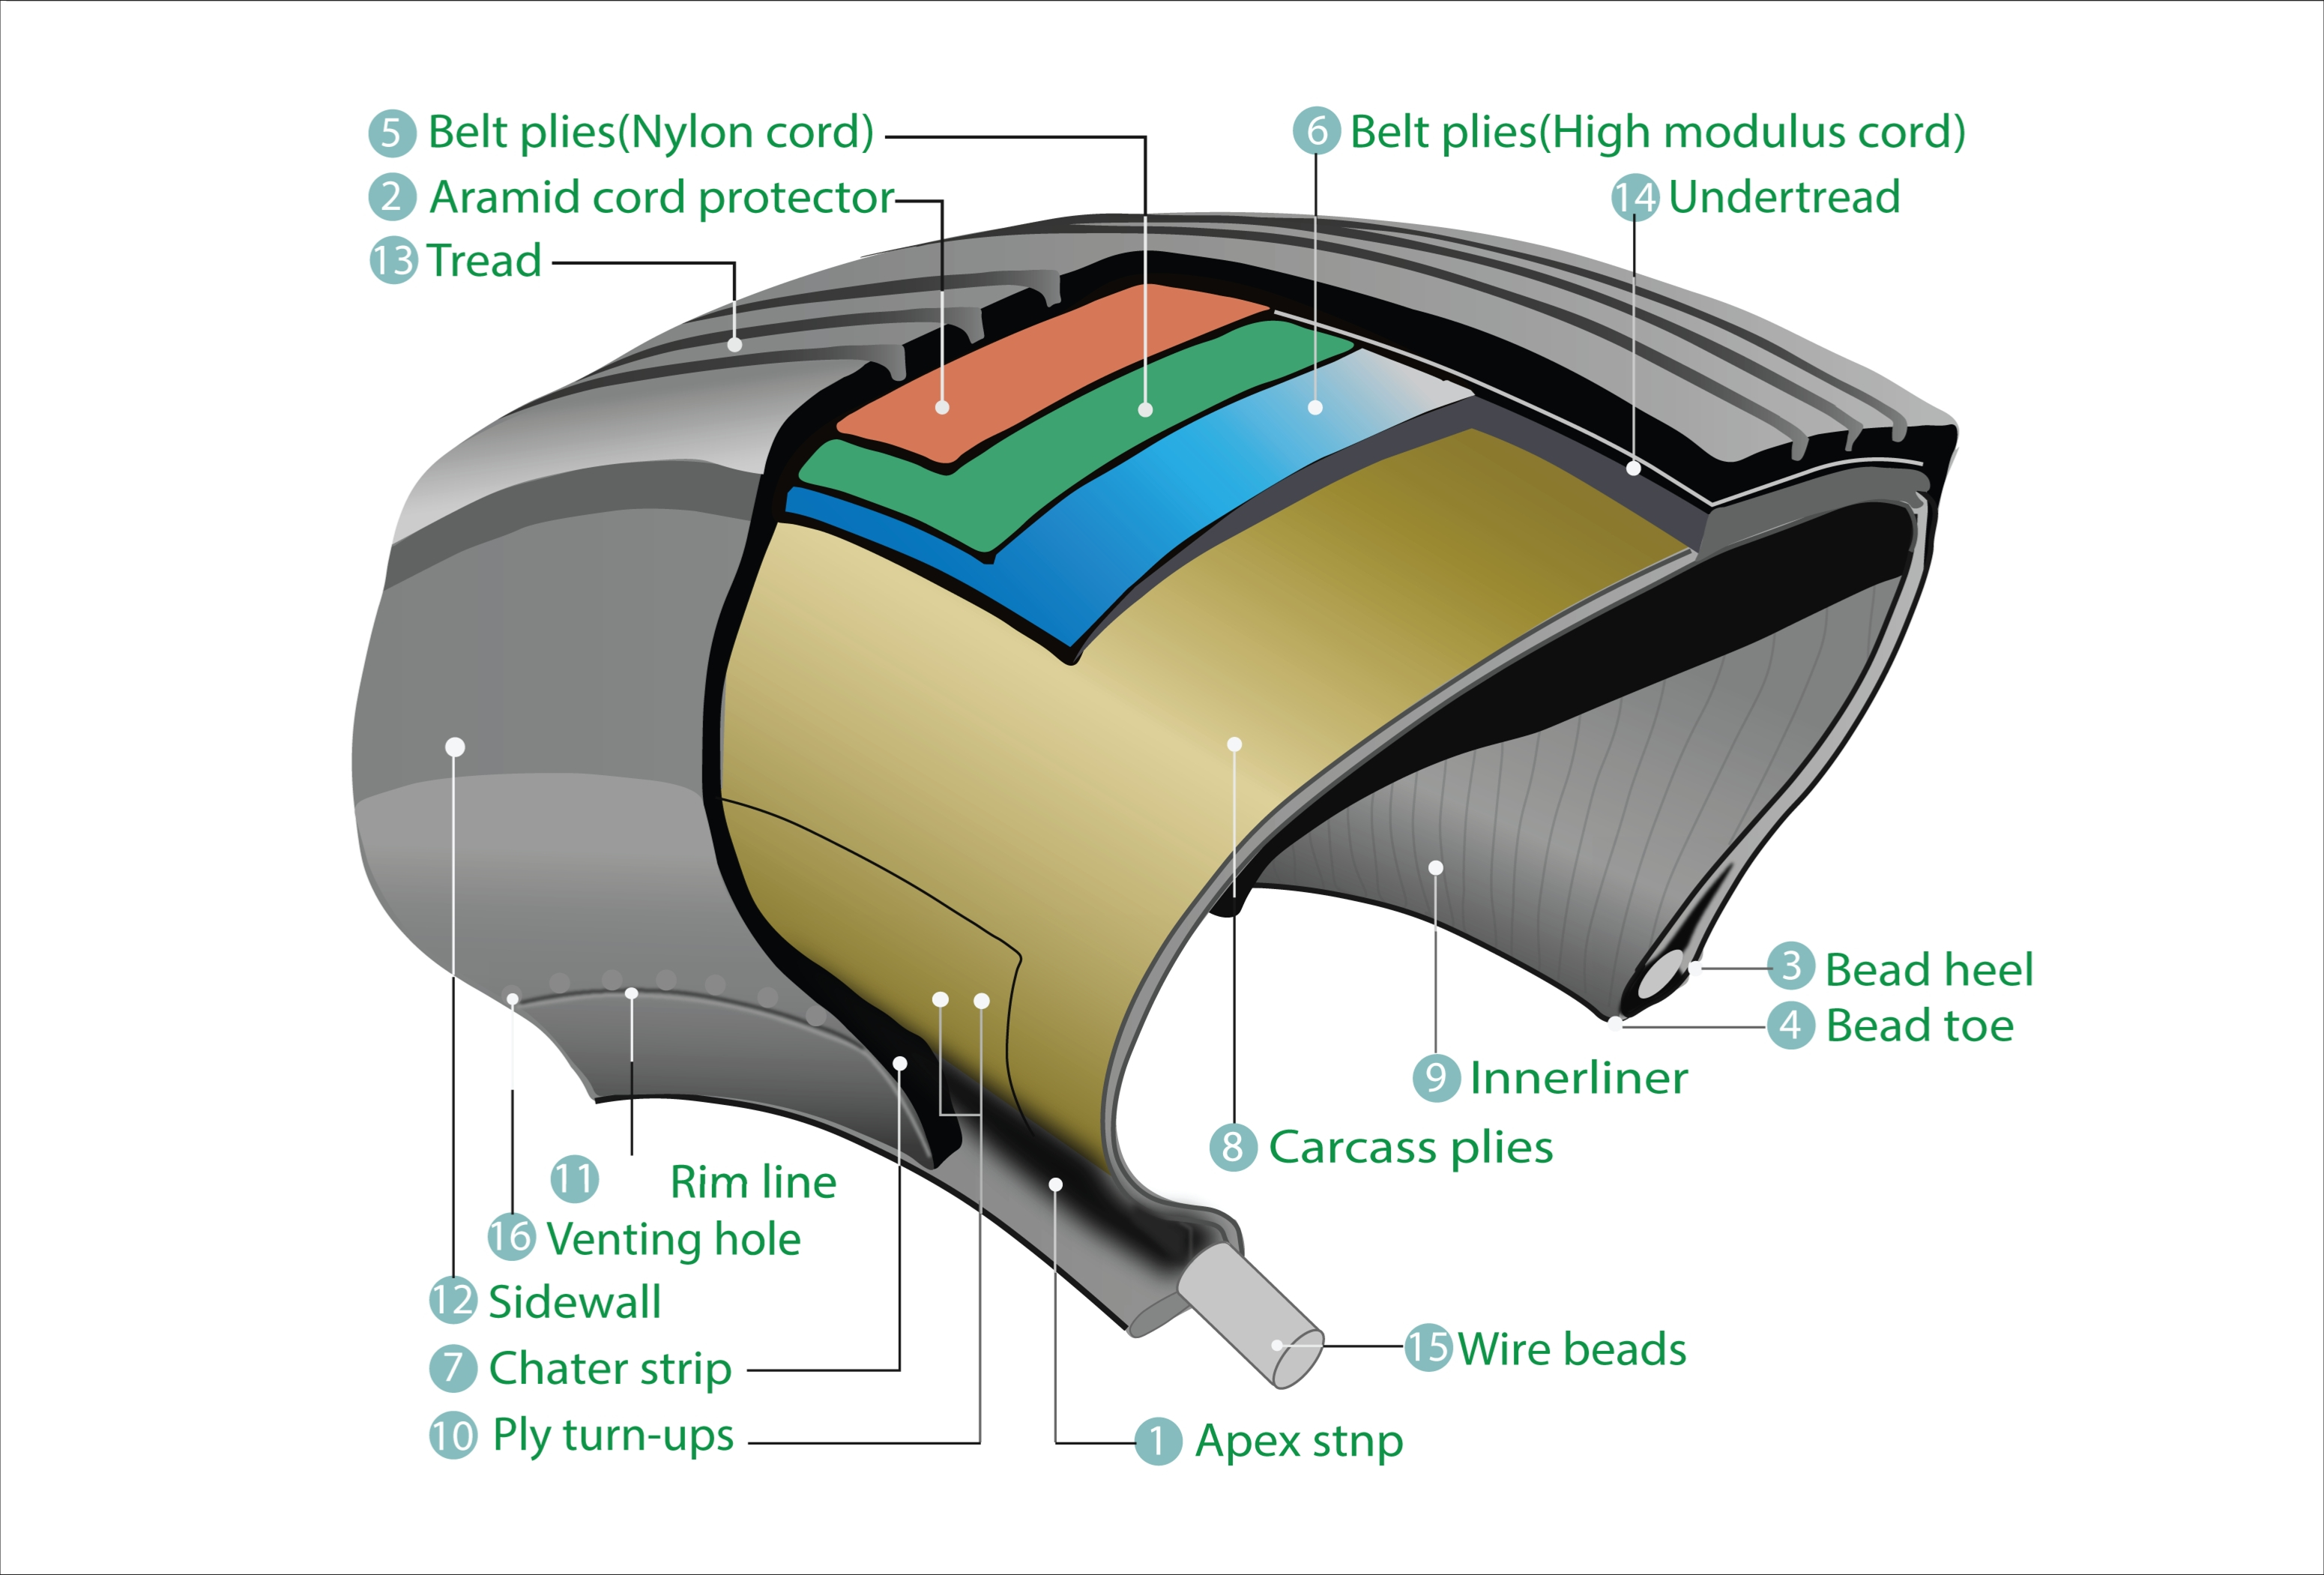 Image shows the different layers of a tire